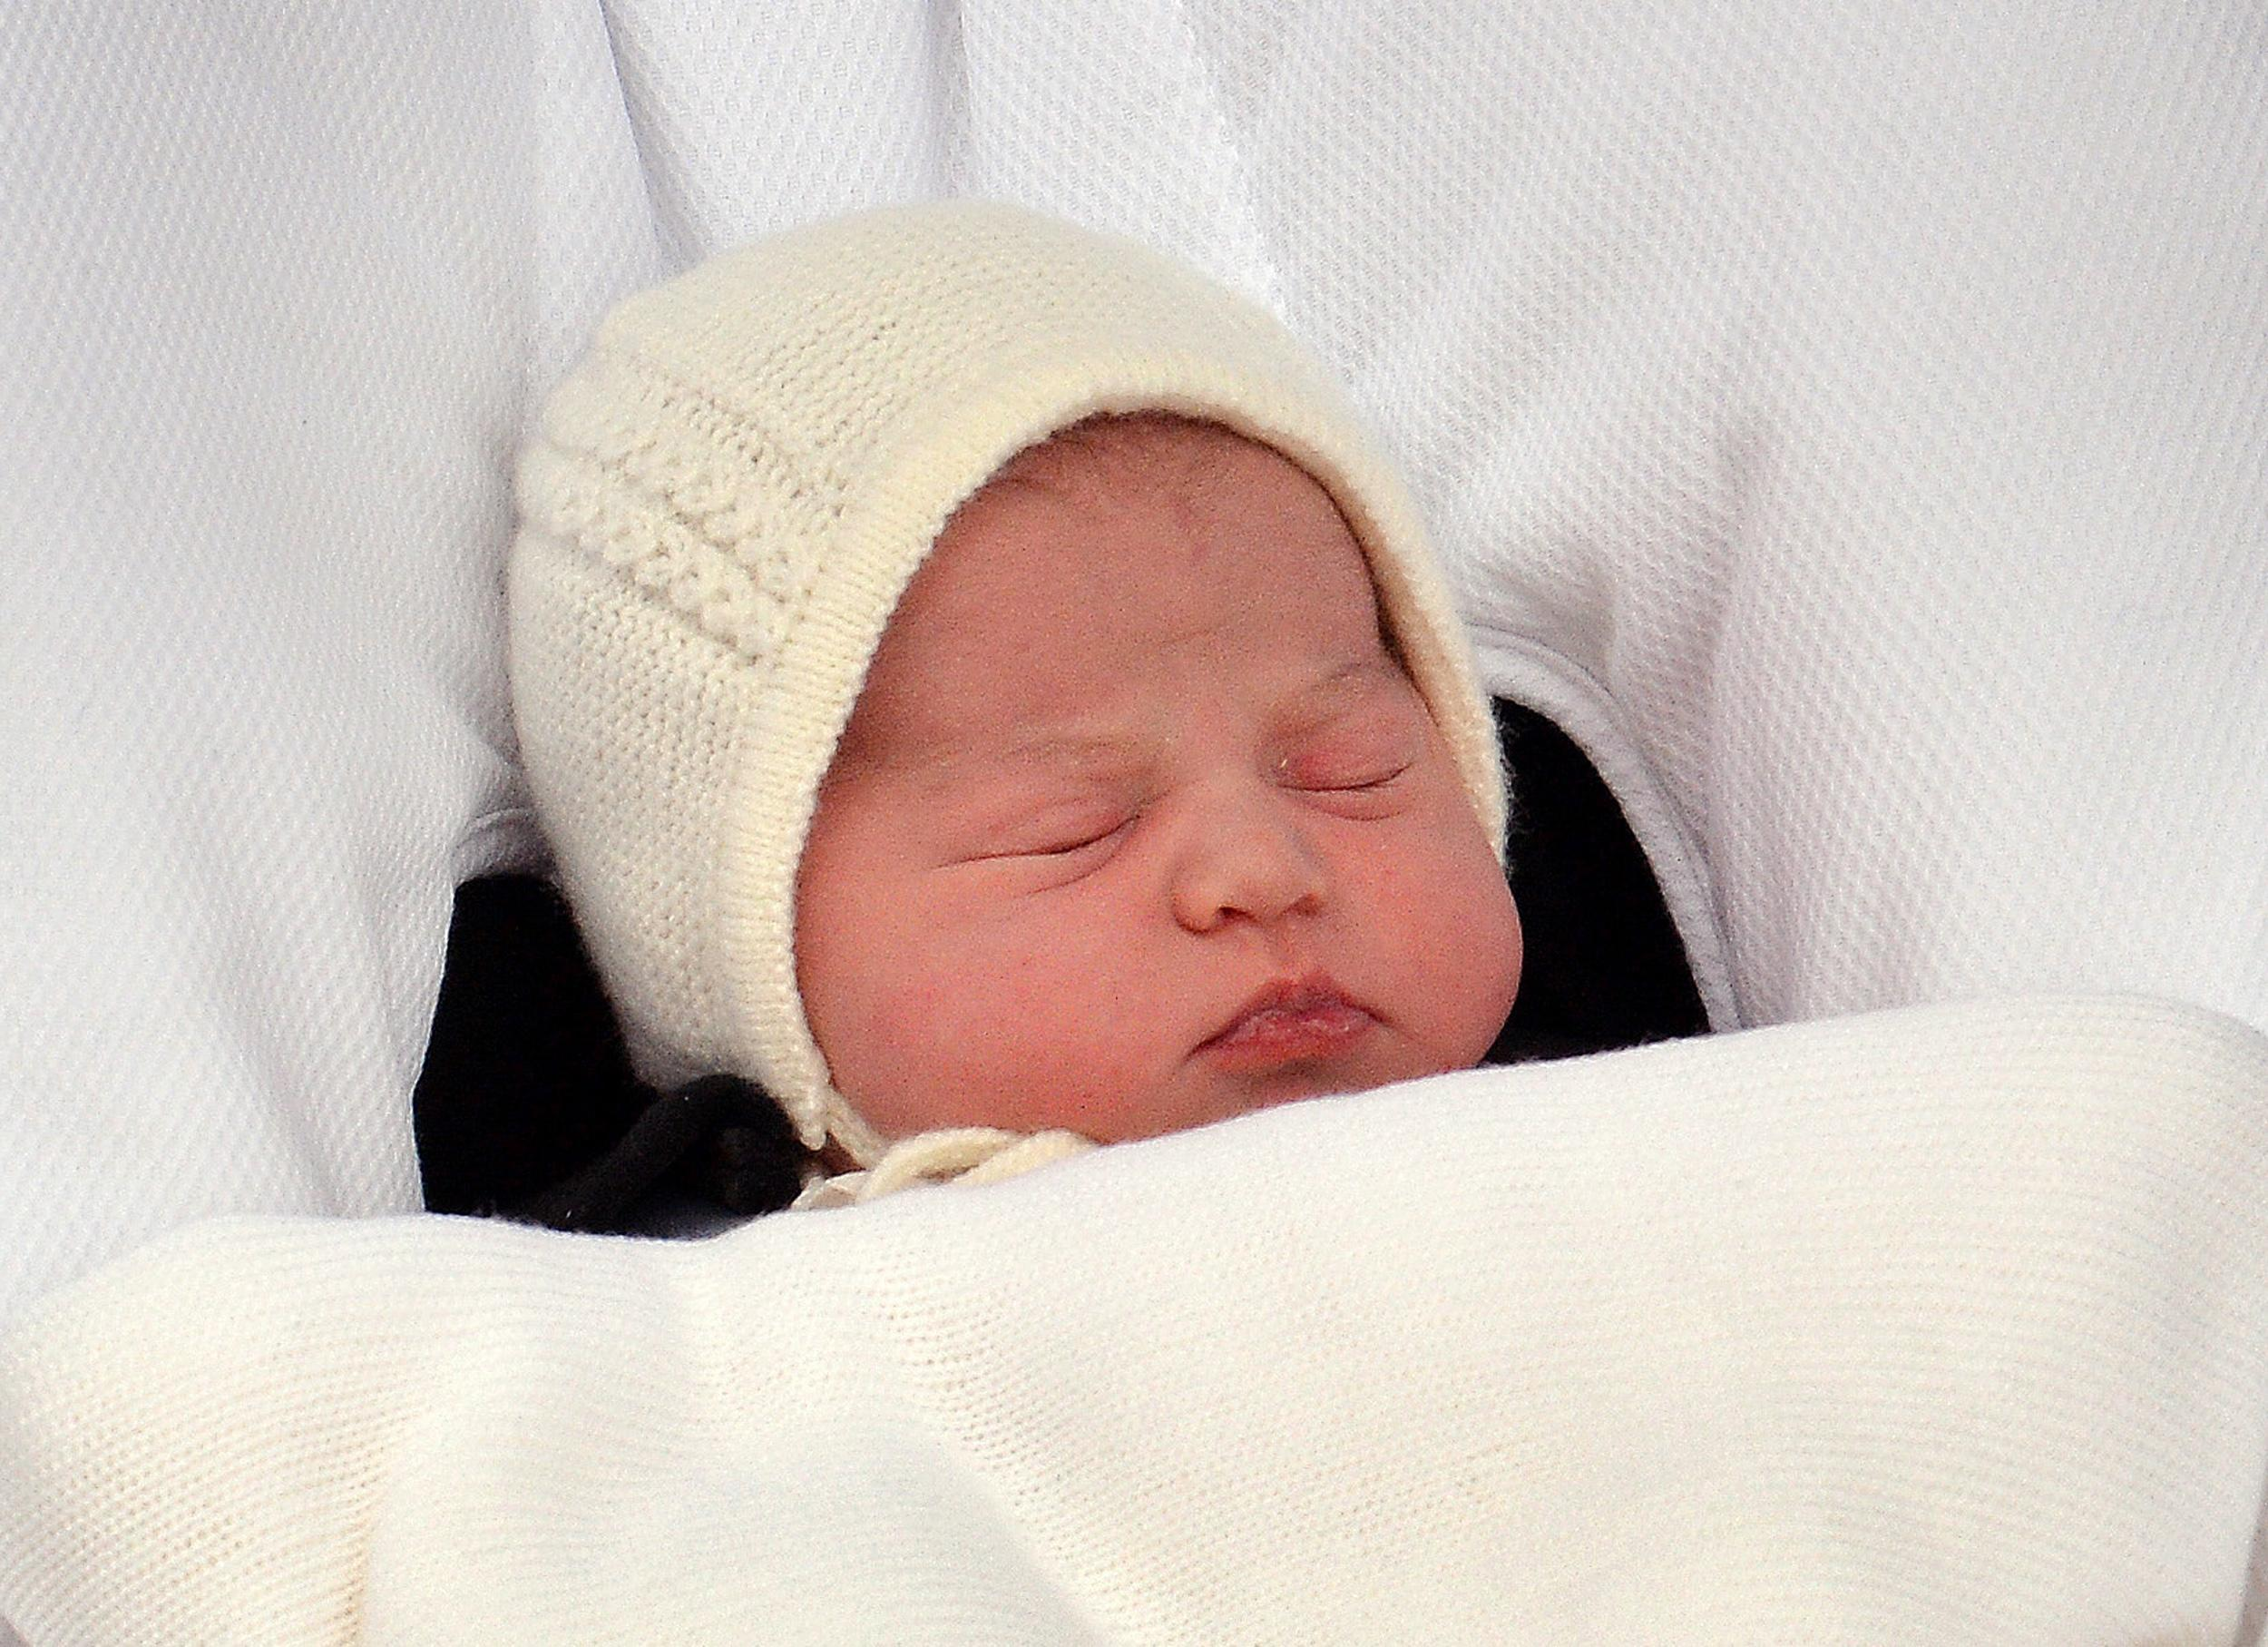 Britain's baby princess named Charlotte Elizabeth Diana